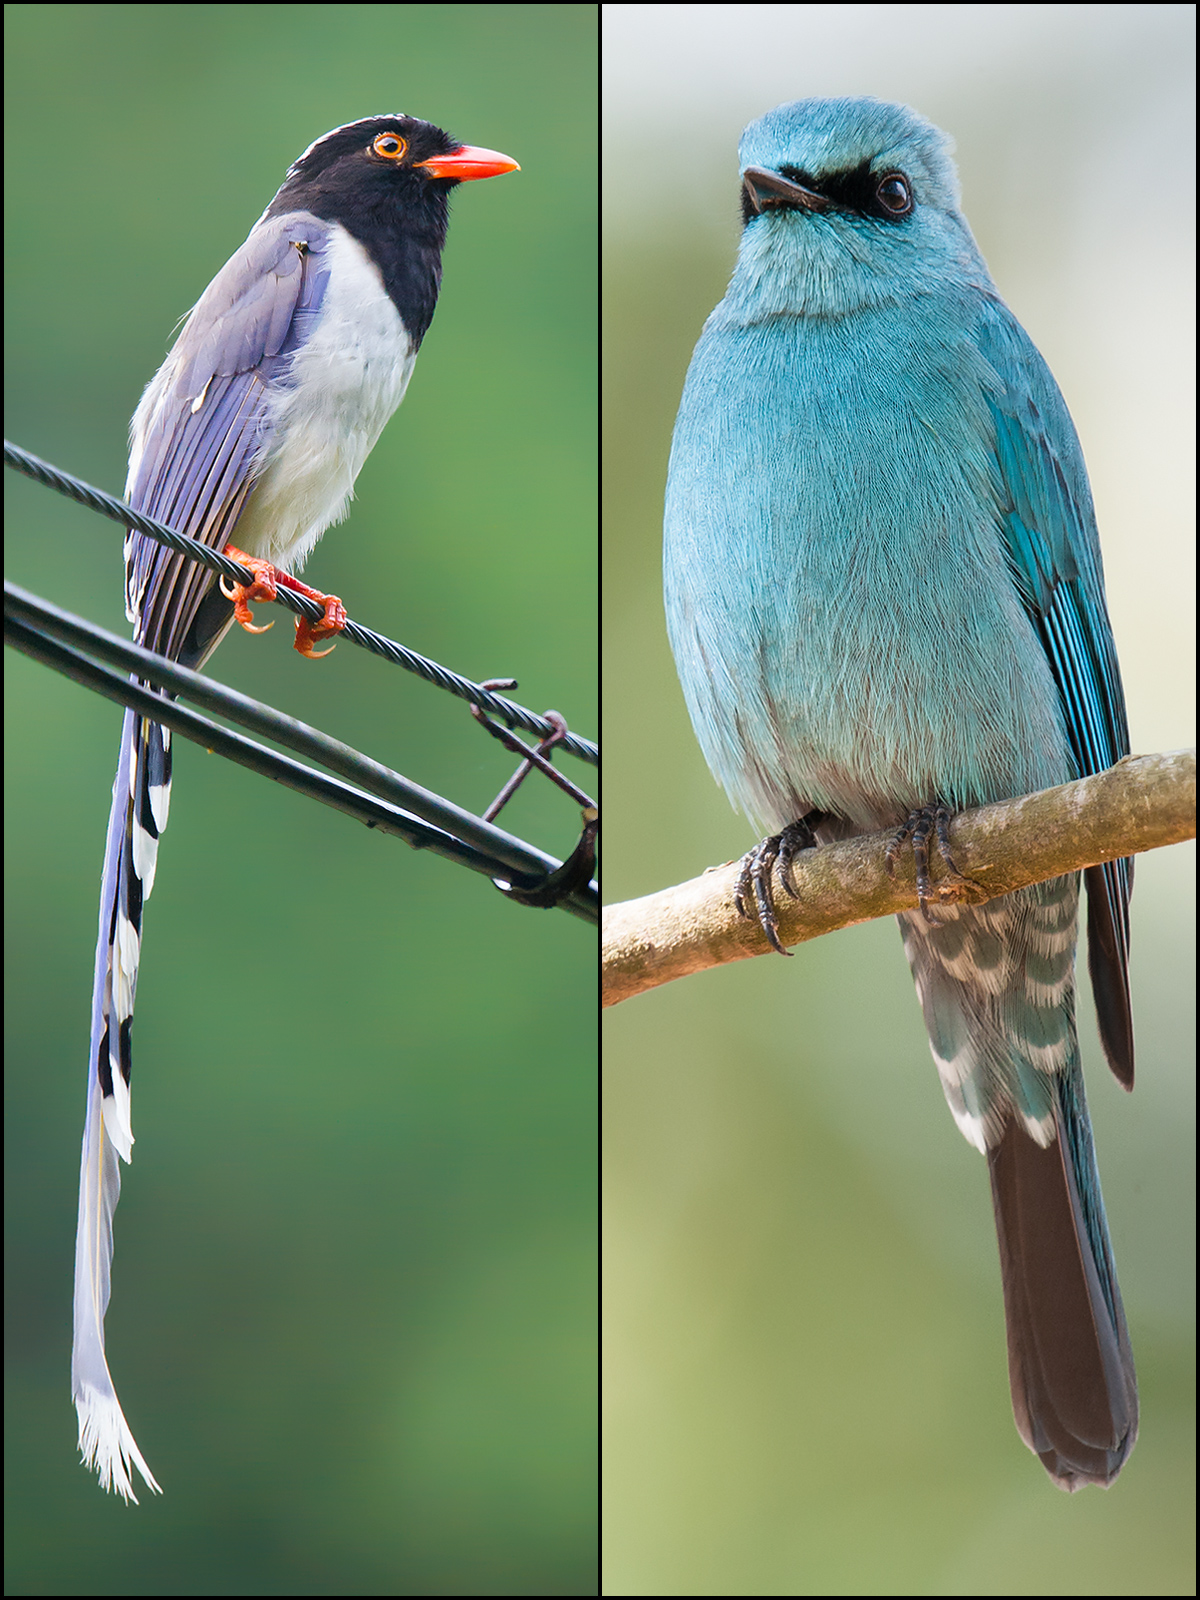 Birds of Emeifeng, 28 May 2015. Red-billed Blue Magpie (L), and Verditer Flycatcher.